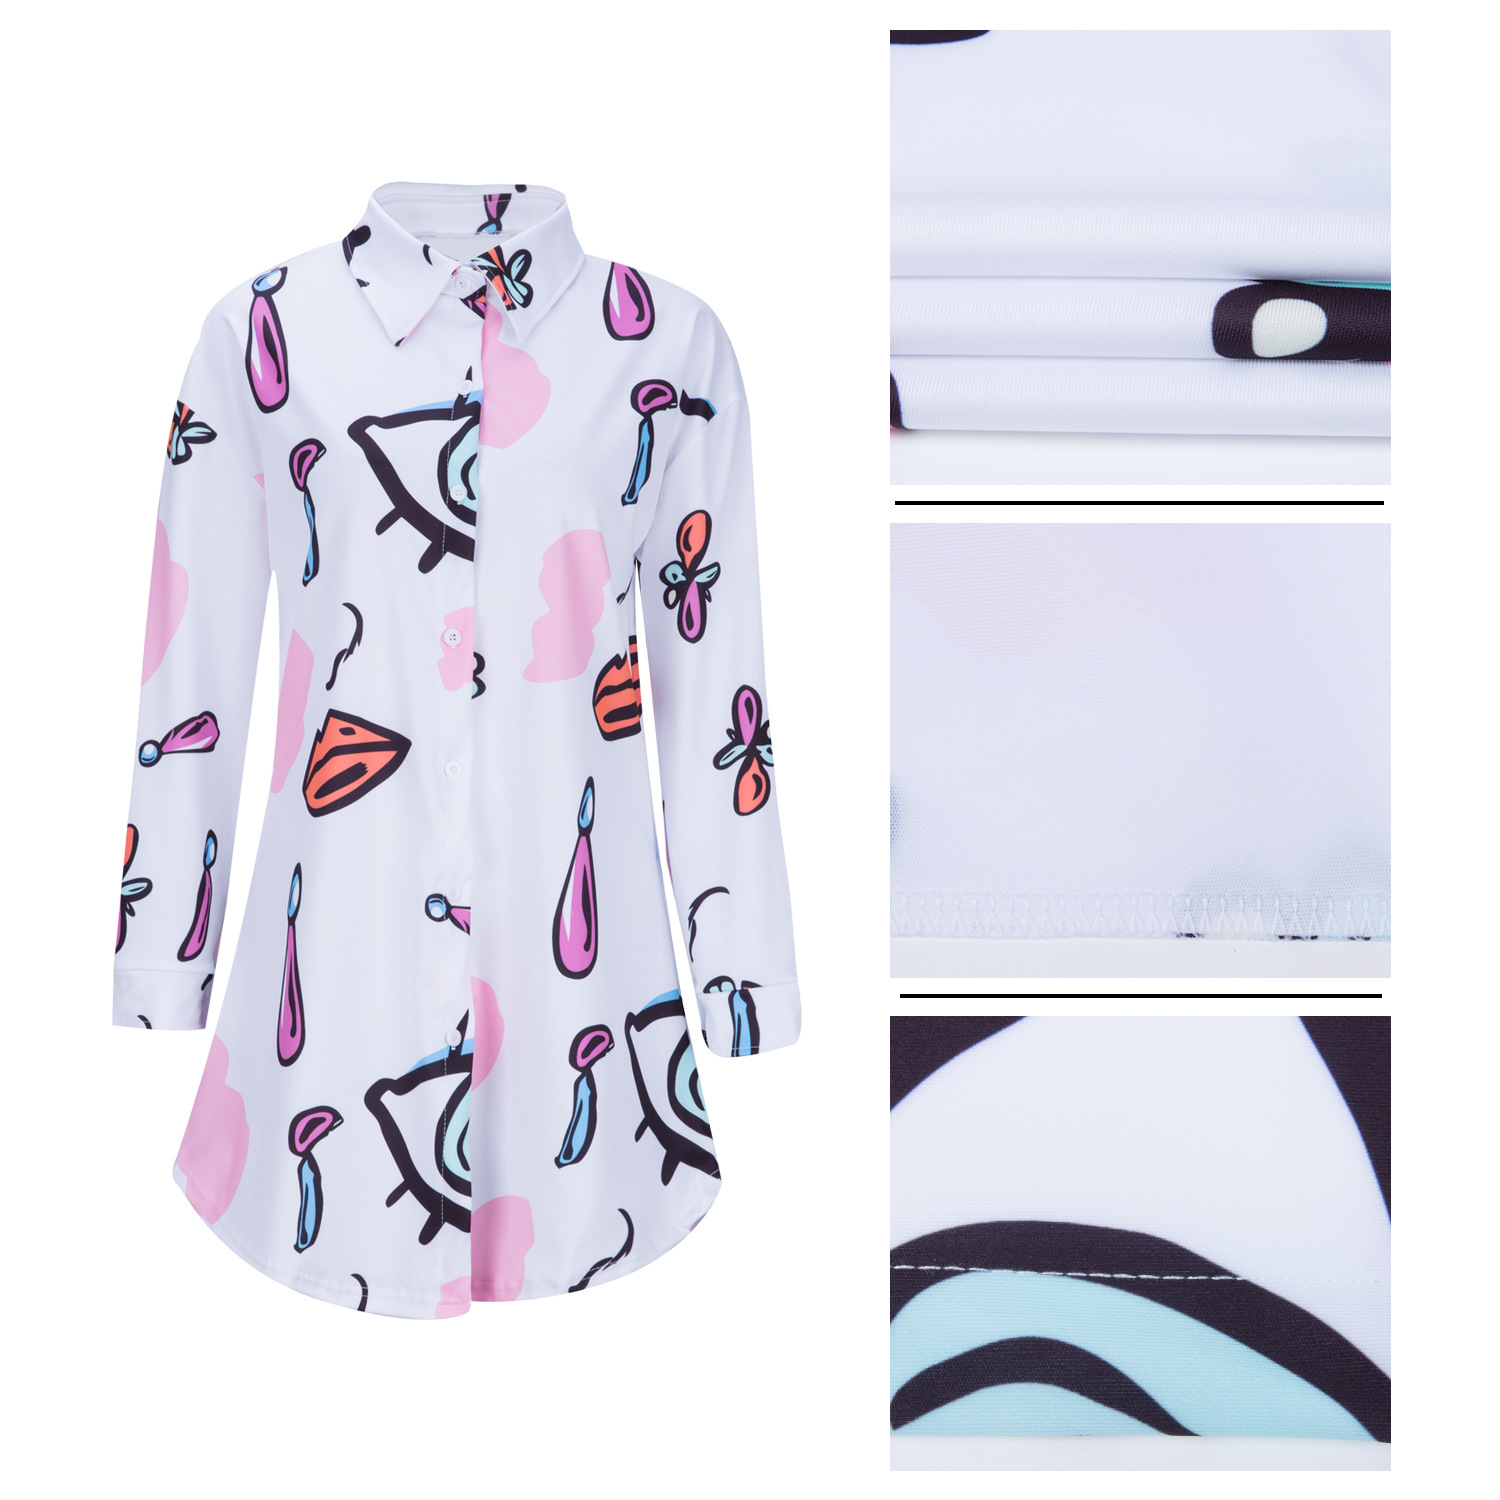 wholesale Club Party long sleeve Graffiti printed Button Down women casual shirt dress